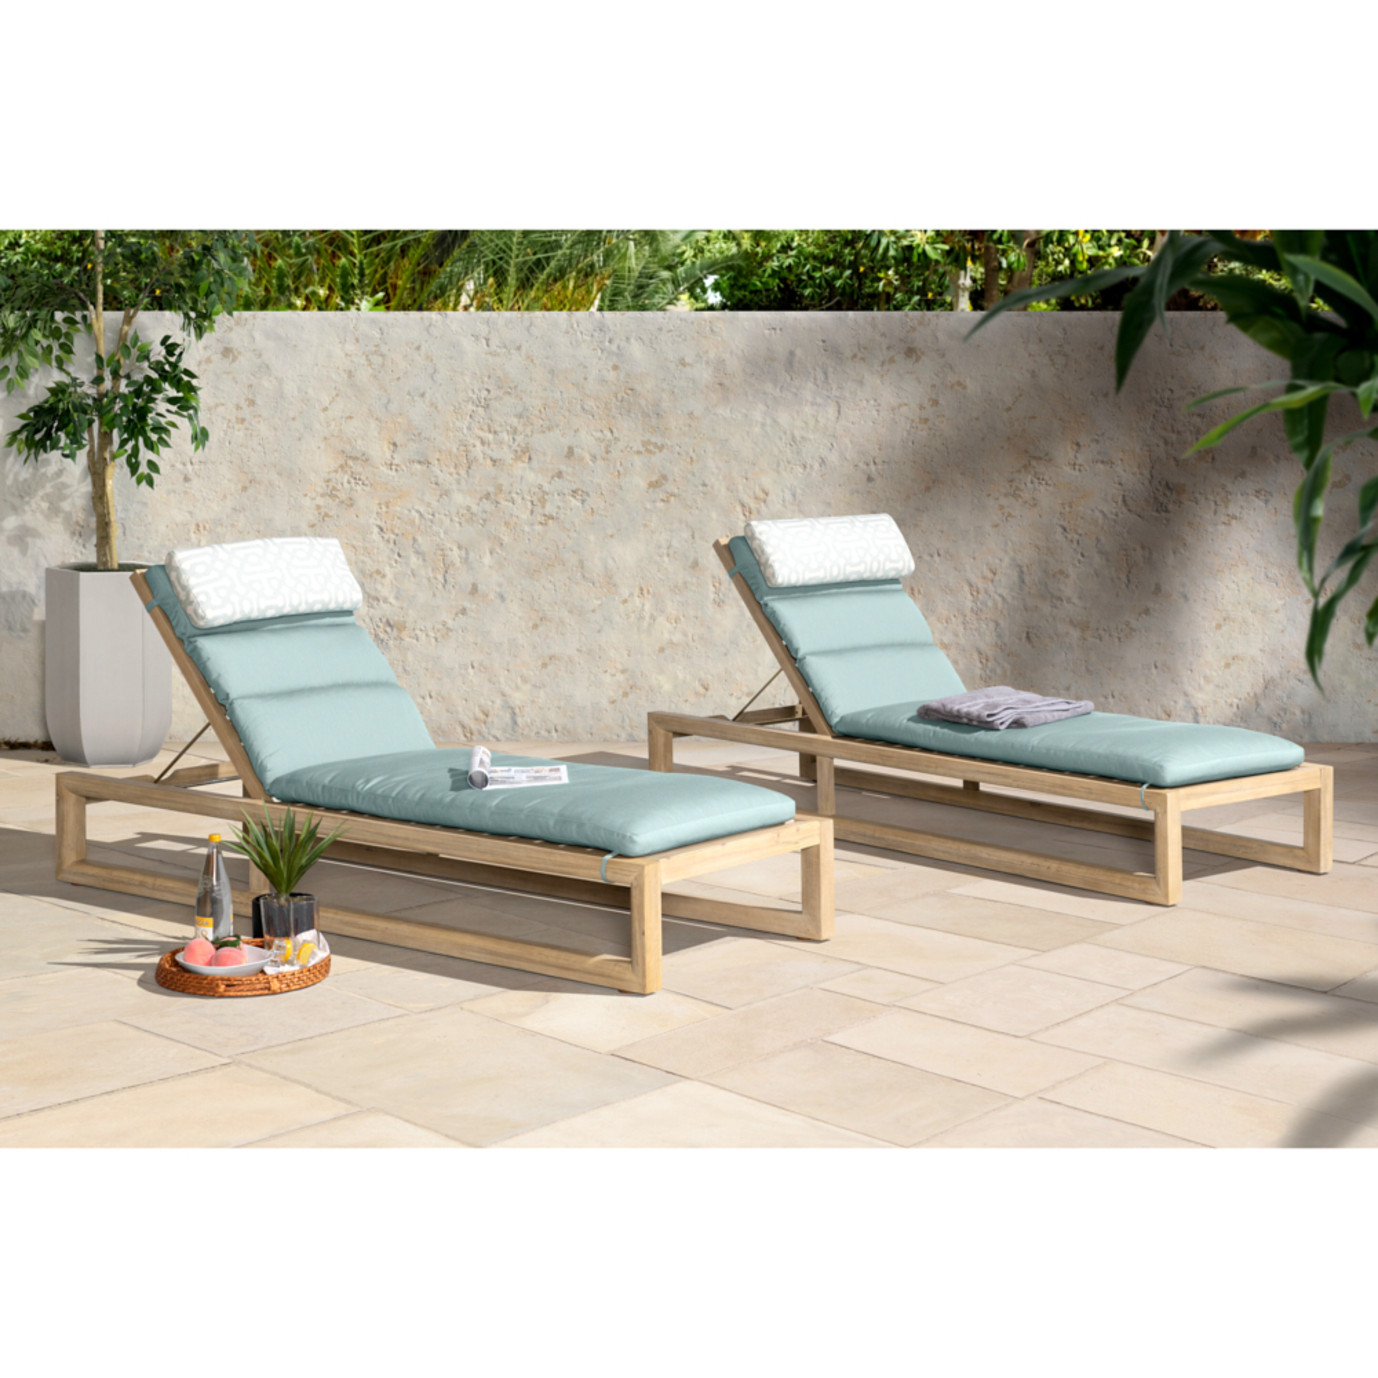 Benson Chaise Lounges - Spa Blue